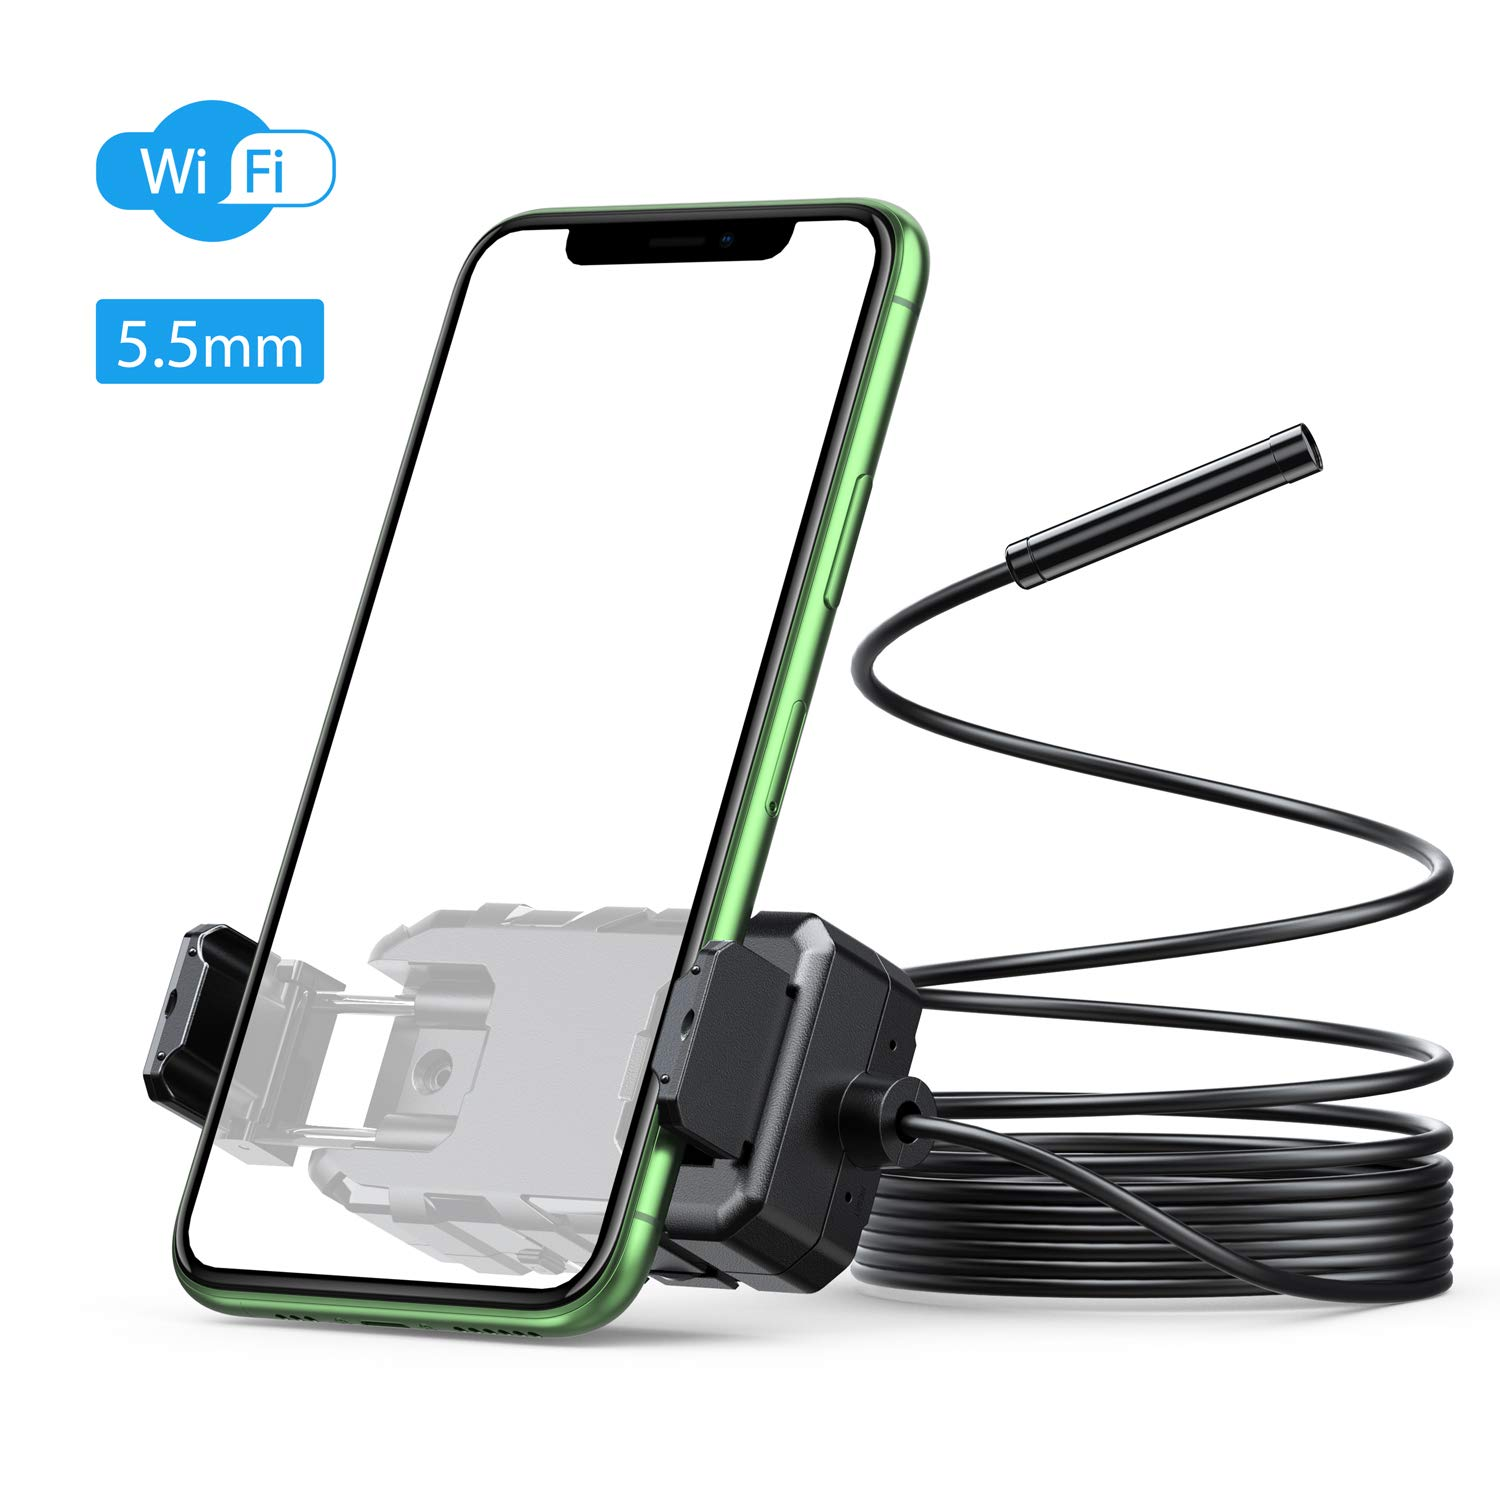 for Android /& iOS Phone and Tablet -16.5FT equiped Phone Mount Holder 5.5mm Ultra-Thin HD WiFi Borescope Wireless Endoscope 16 inch Focal Distance Inspection Camera